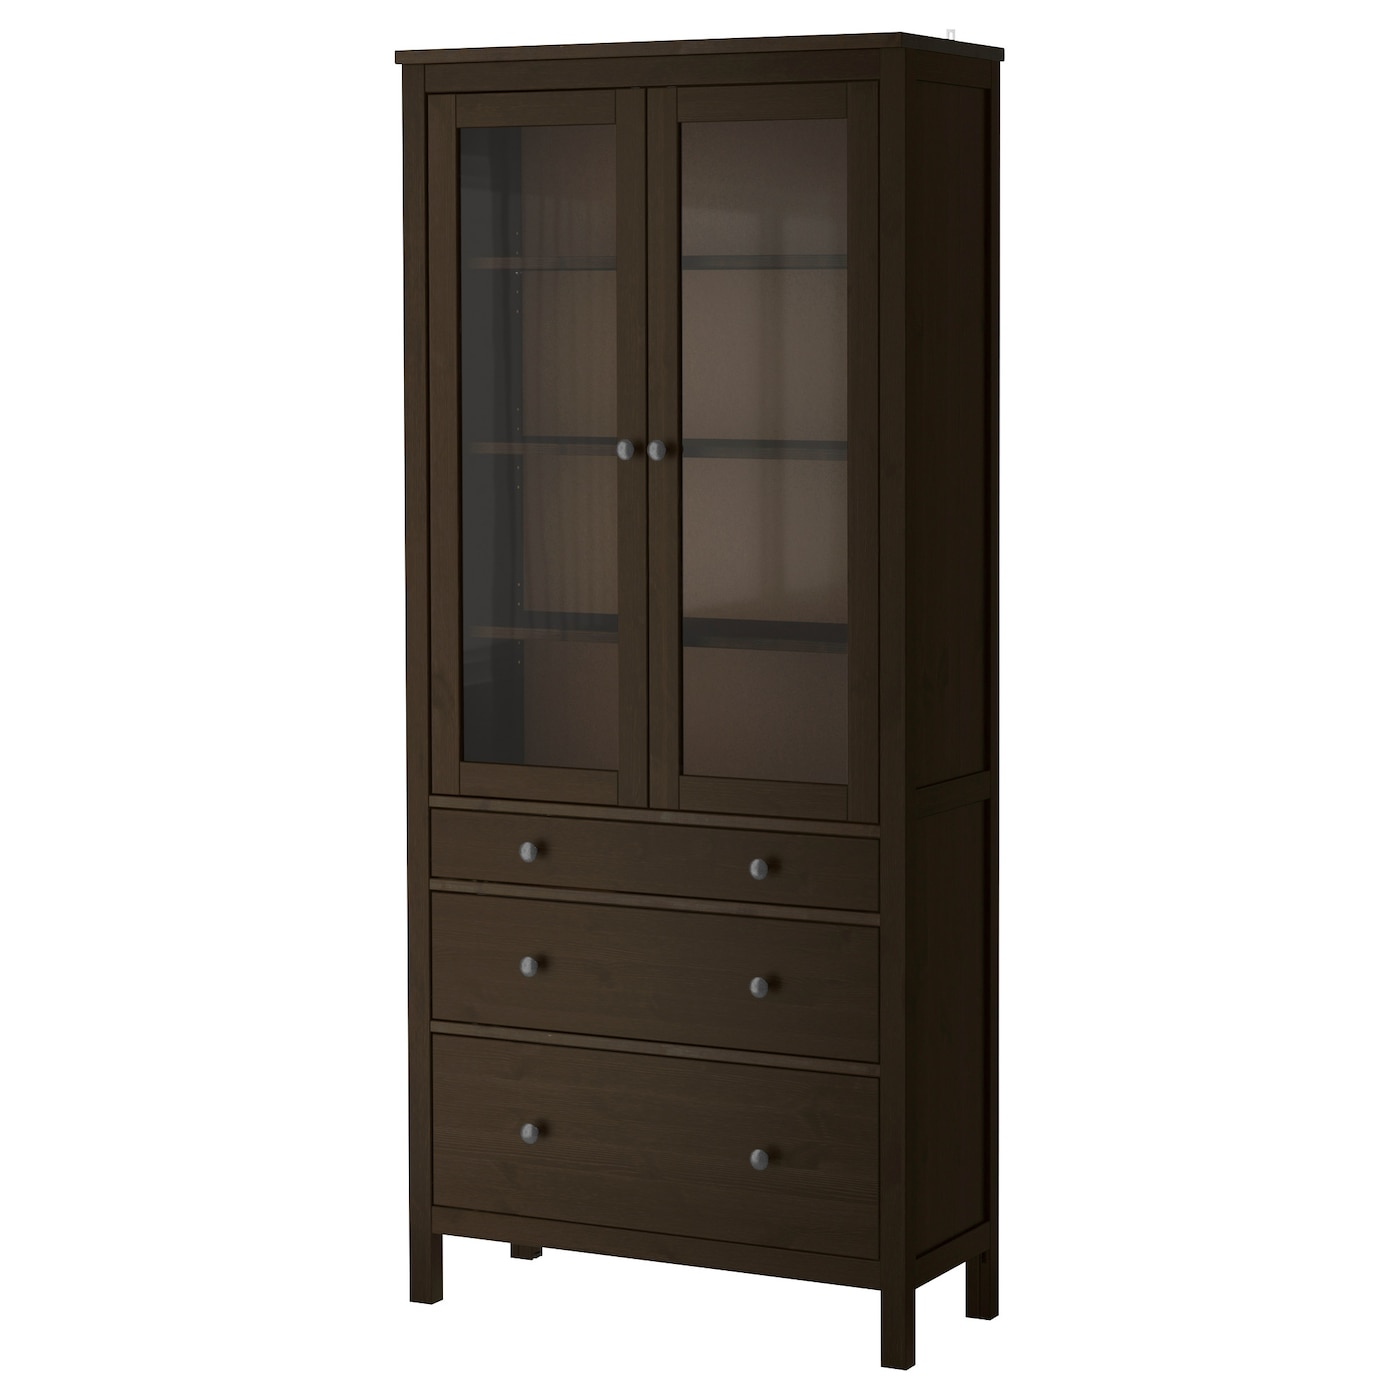 Hemnes glass door cabinet with 3 drawers black brown - Ikea glass cabinets ...